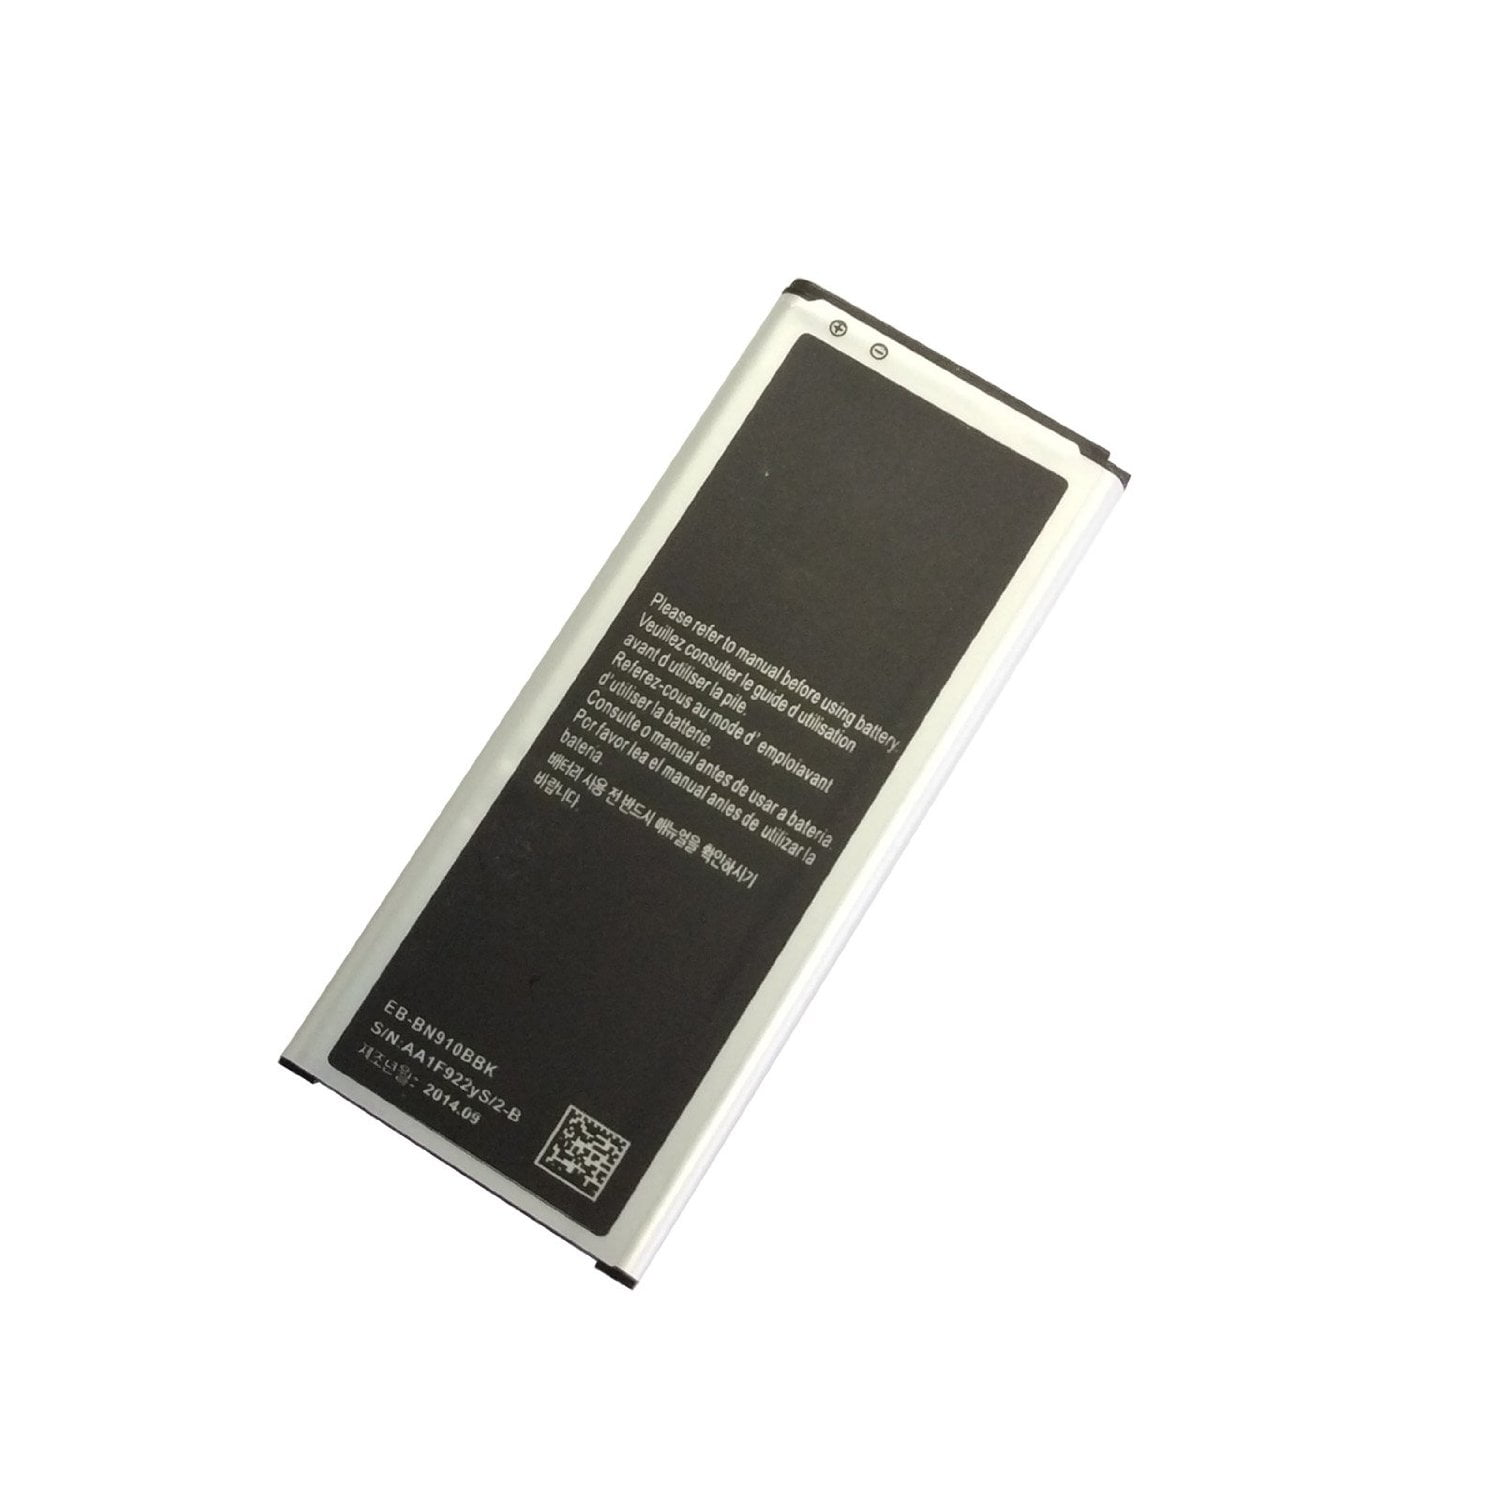 cybertech cell phone replacement battery for samsung galaxy note 4 verizon t mobile at t sprint 3220mah li ion walmart com